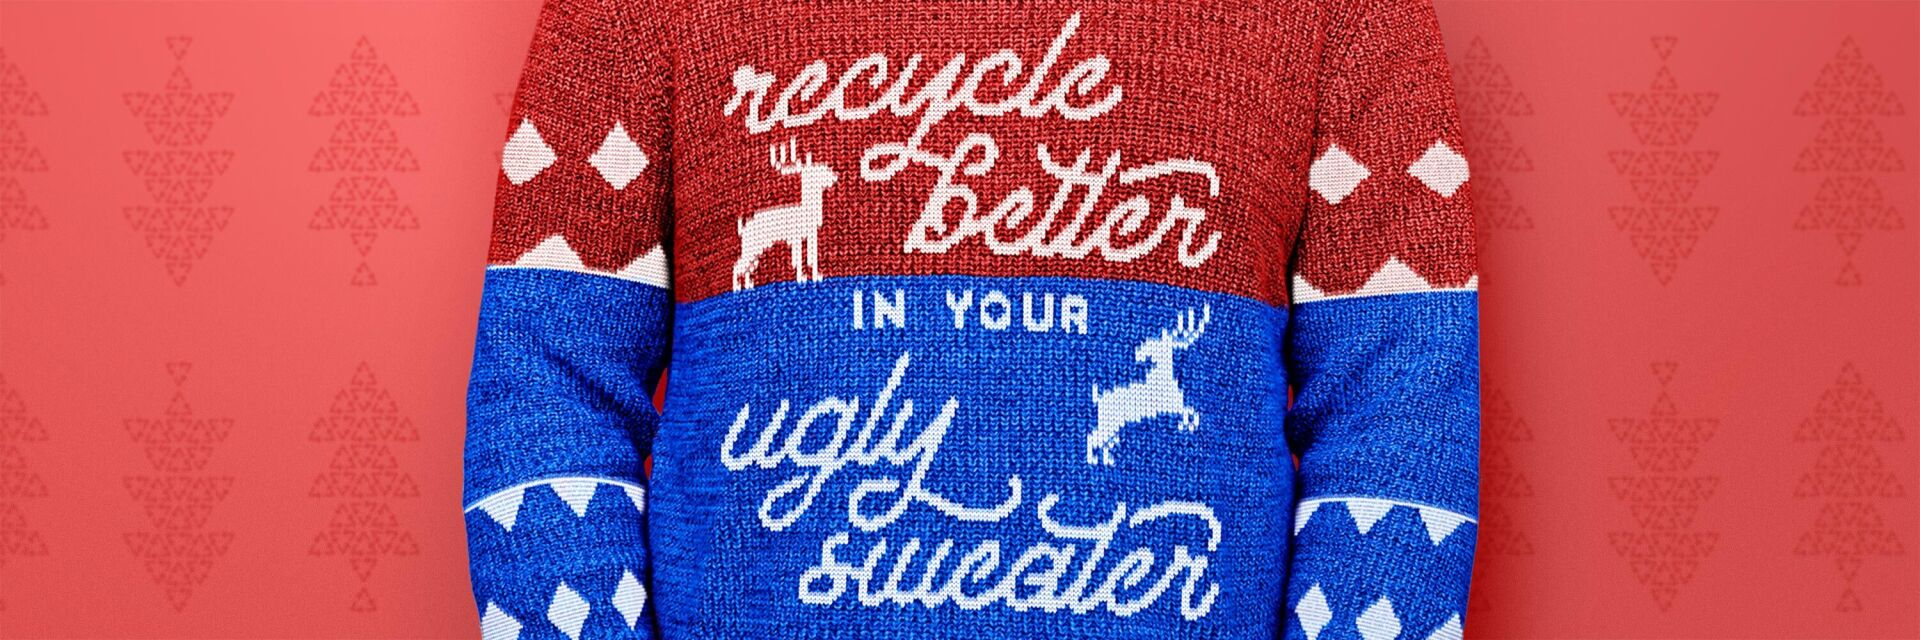 Recycle Better in your Ugly Sweater Graphic